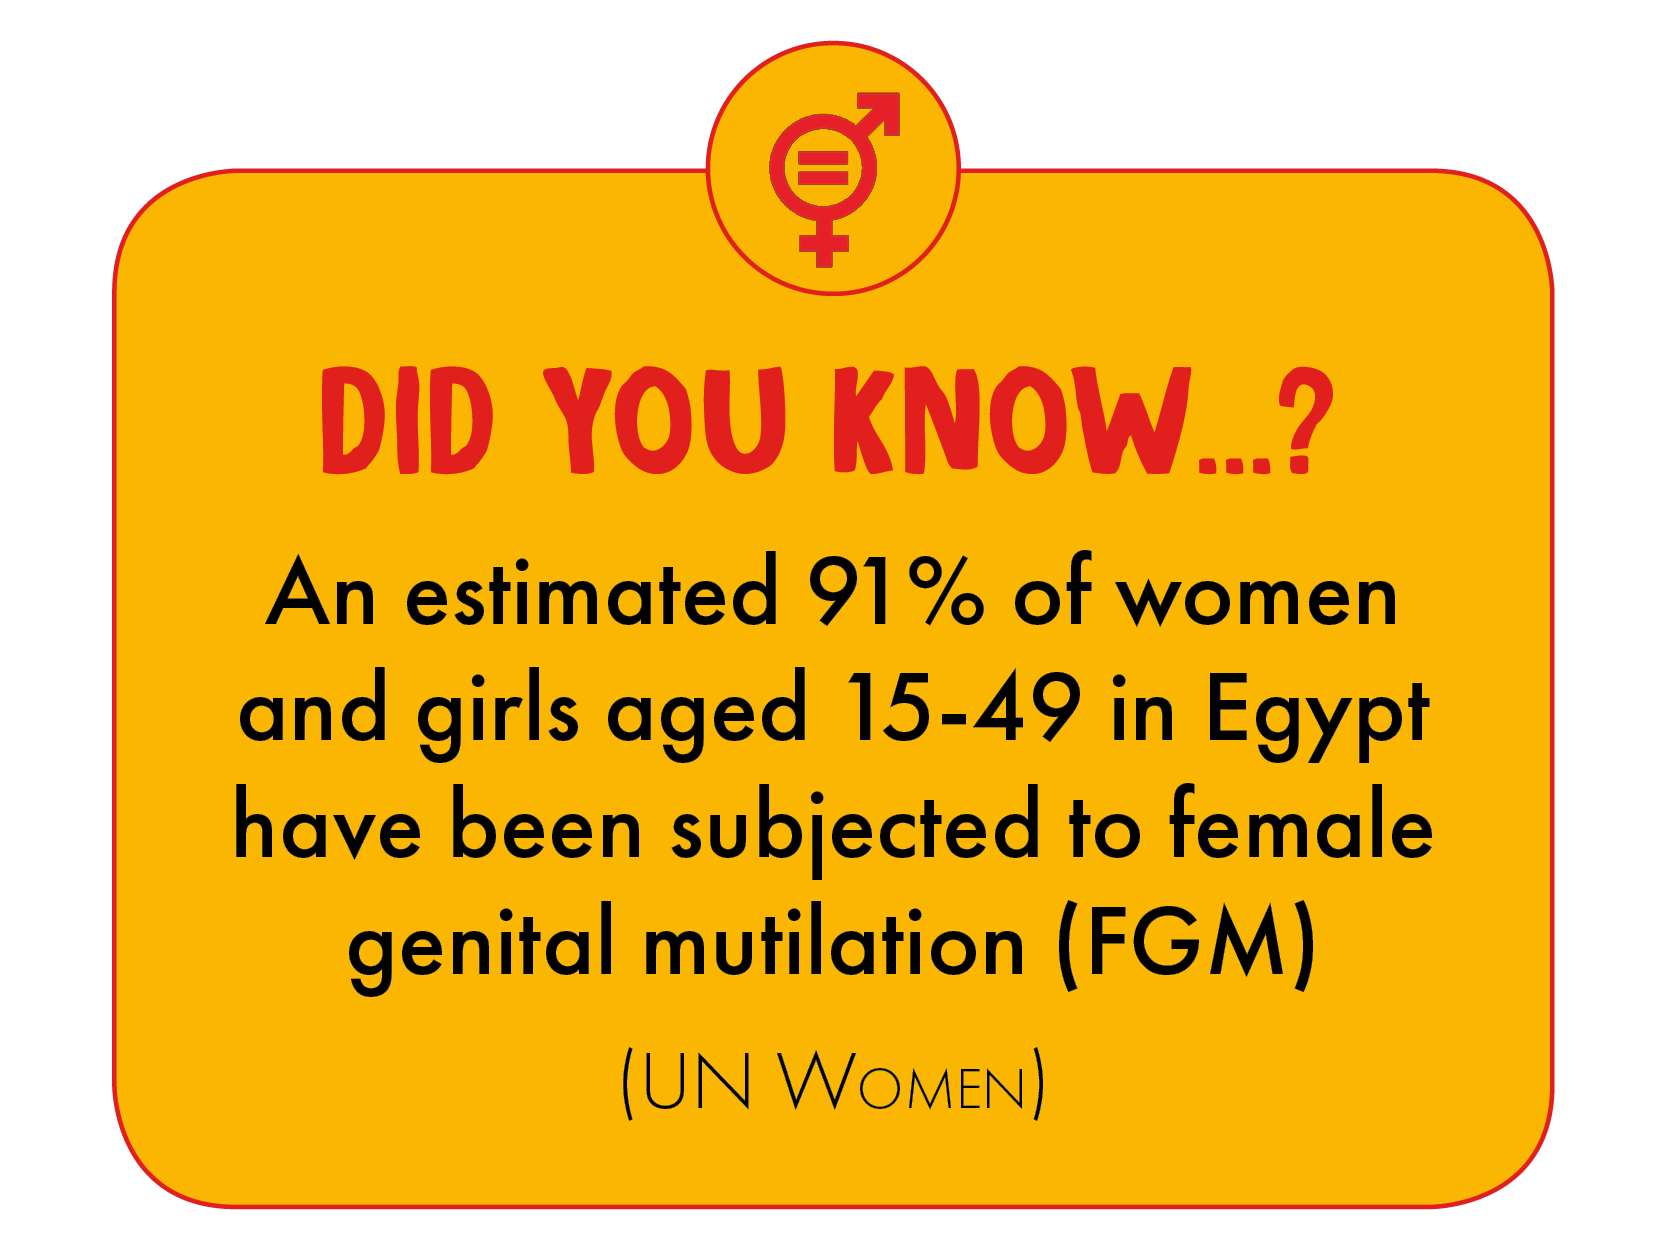 An estimated 91% of women and girls aged 15-49 in Egypt have been subjected to FGM.